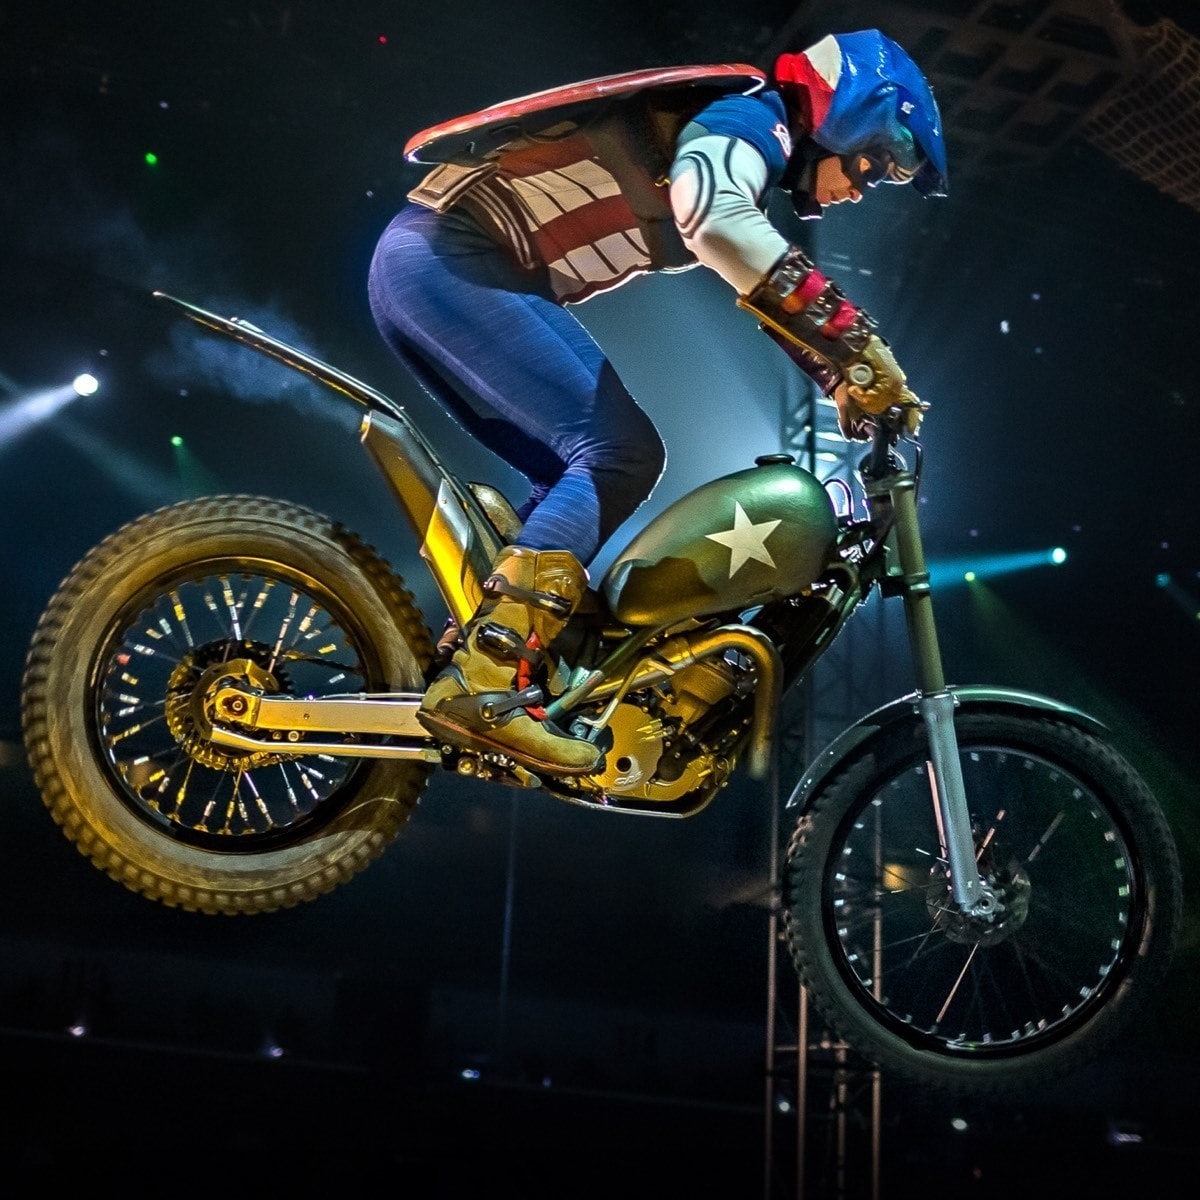 Captain America jumping a dirt bike with stage lights in the background